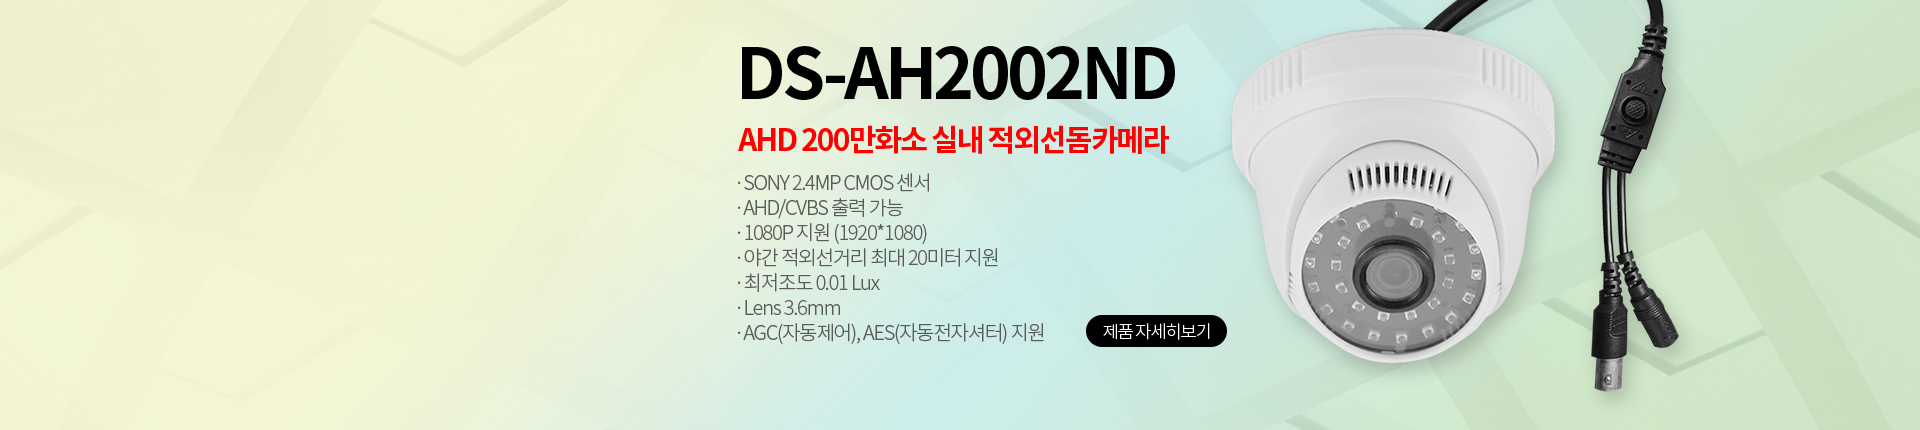 DS-AH2002ND